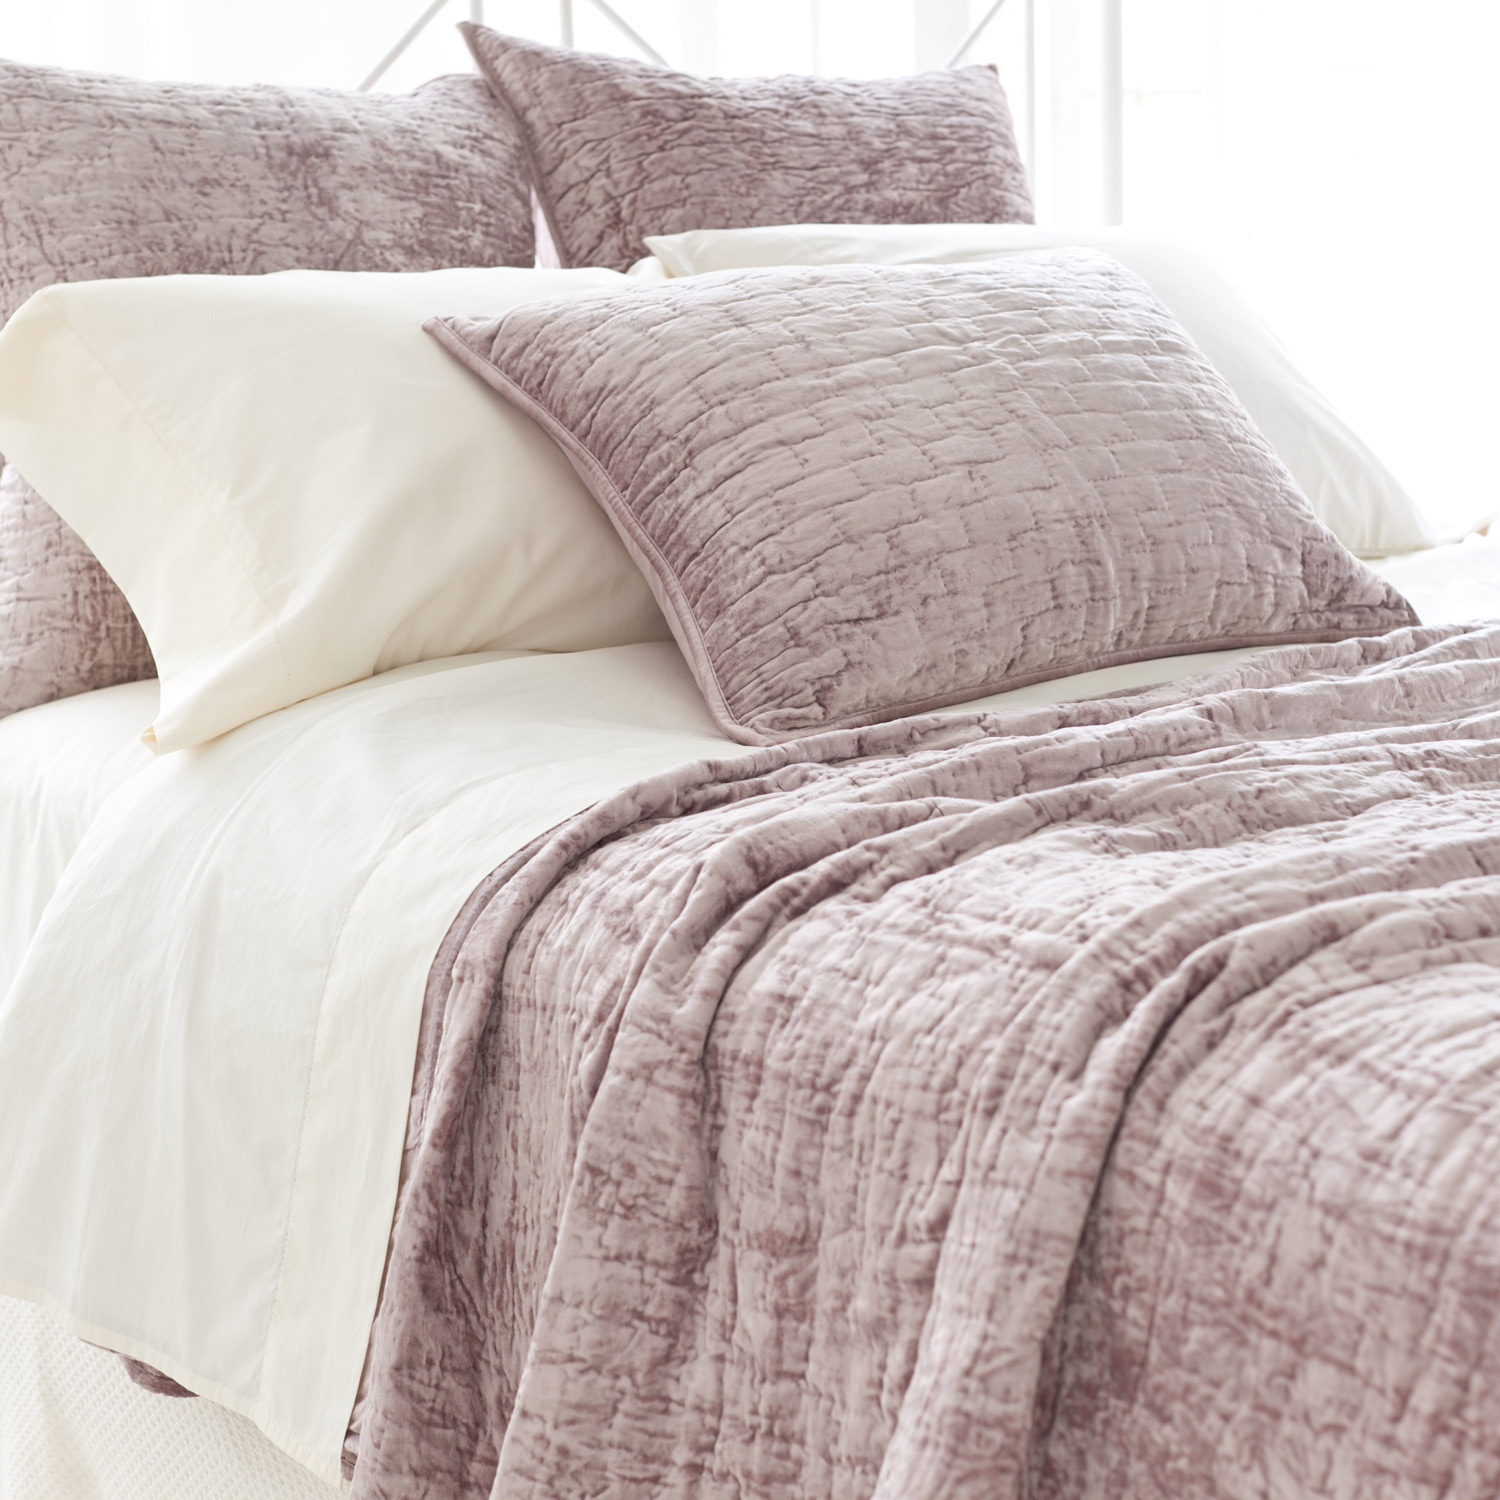 Lovely Pine Cone Hill Bedding For Interesting Bed Ideas: Pine Cone Hill Matte Velvet Dusty Plum Quilt Bedding For Lovely Bed Ideas